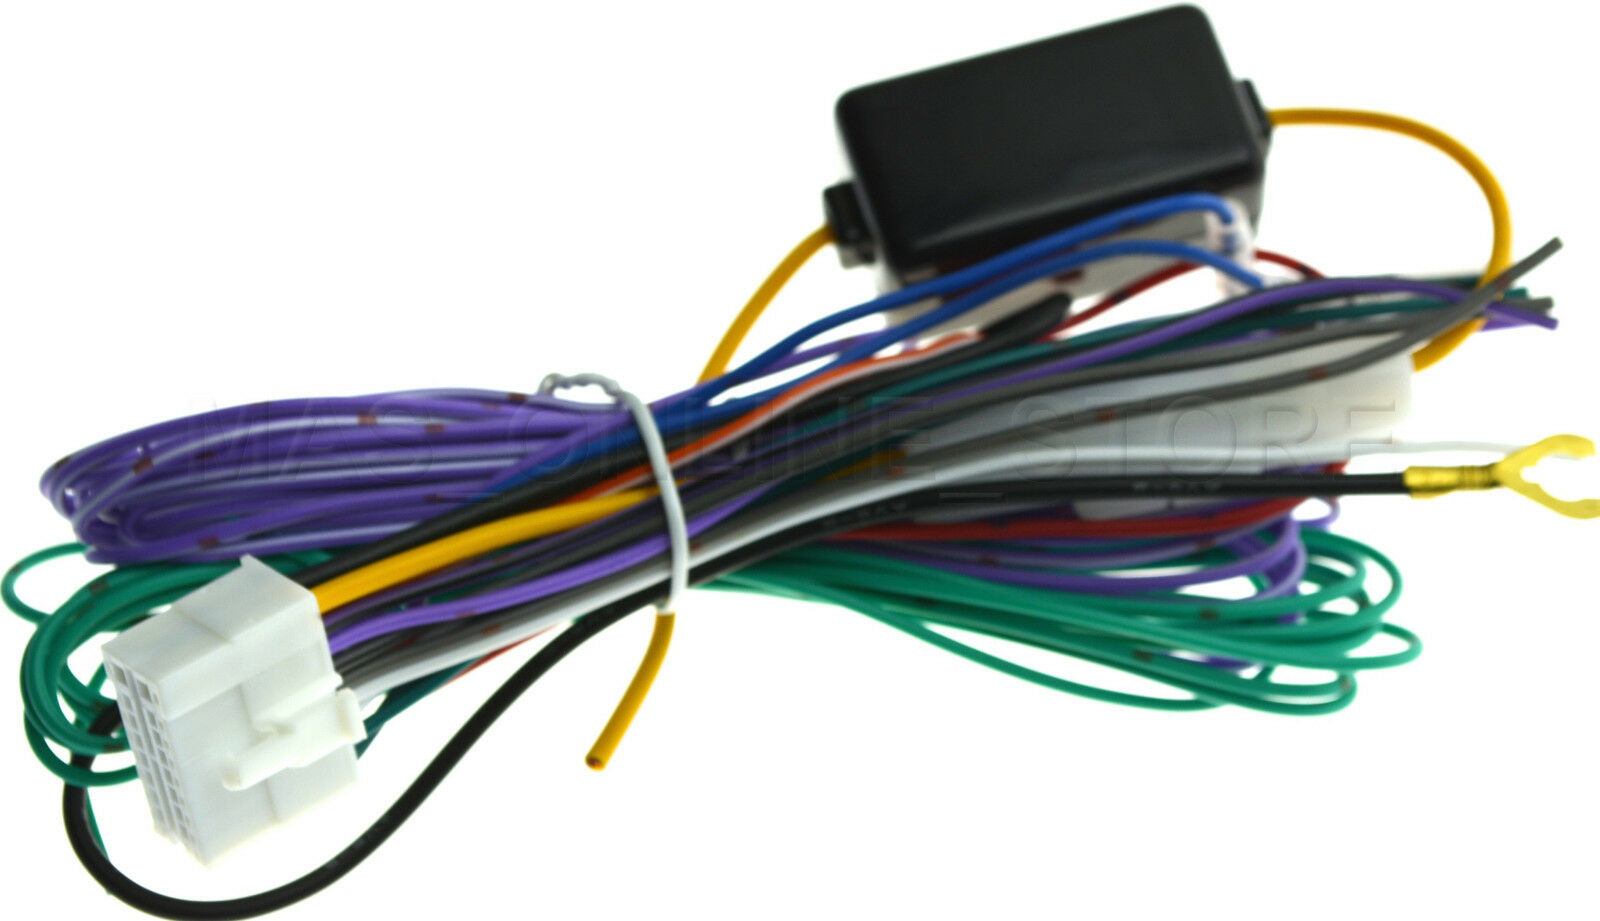 Wire Harness Clarion Vx409 Wiring Library Electrical Vx401 Vx 401 Genuine Pay Today Ships 1 Of